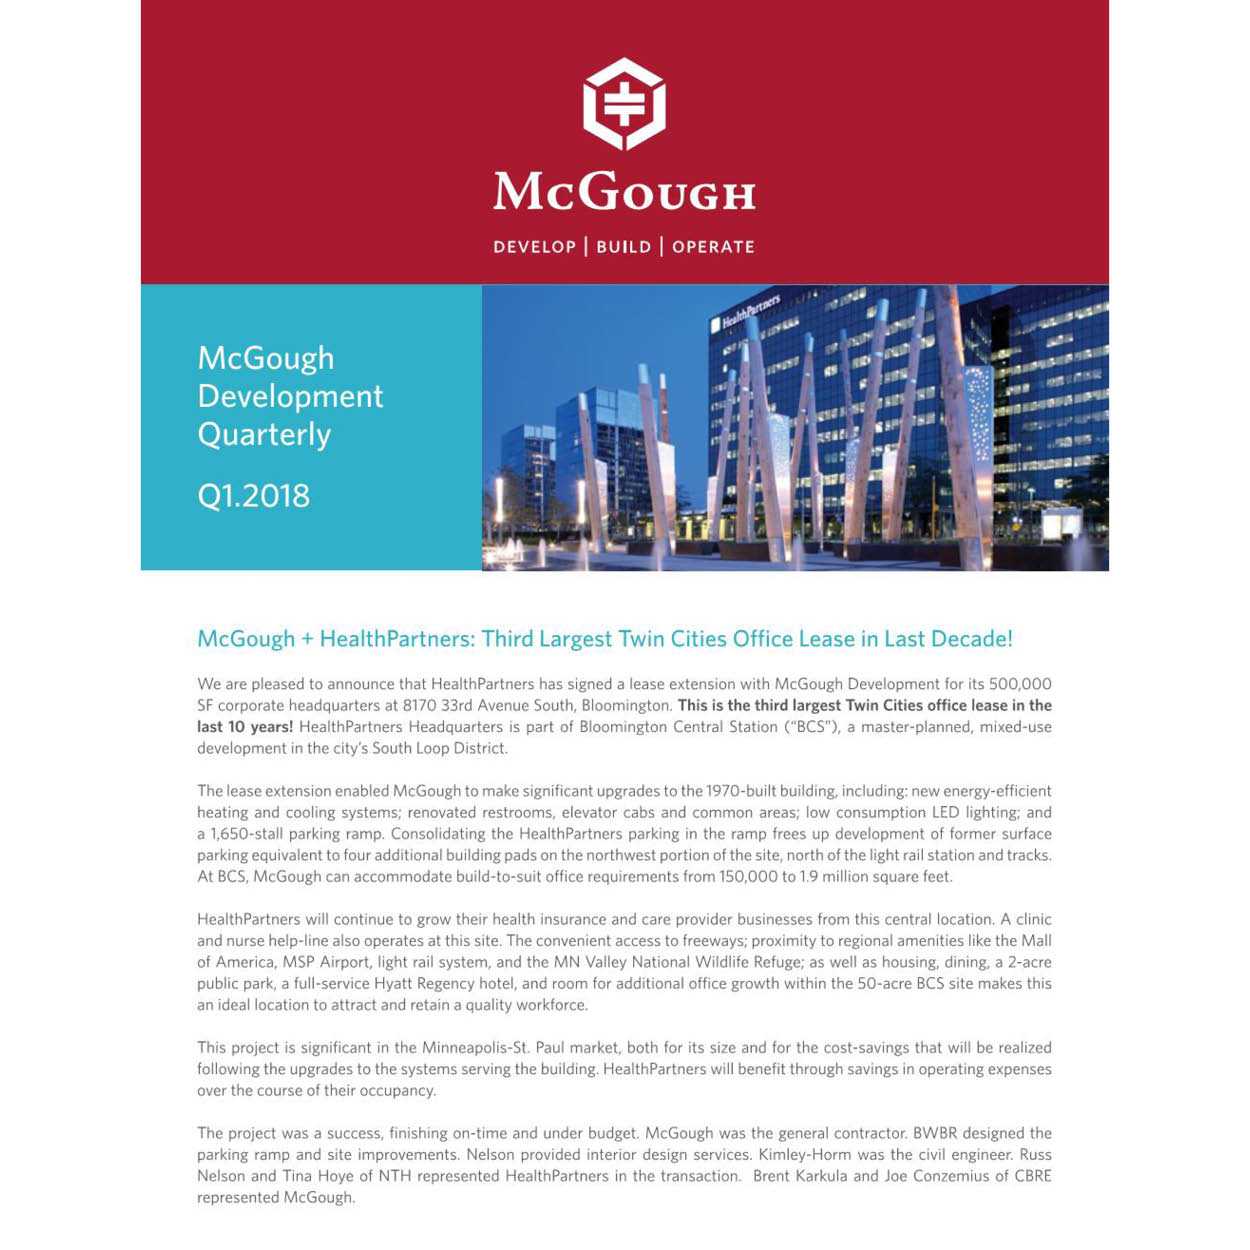 McGough Development Quarterly Newsletter Q1 2018